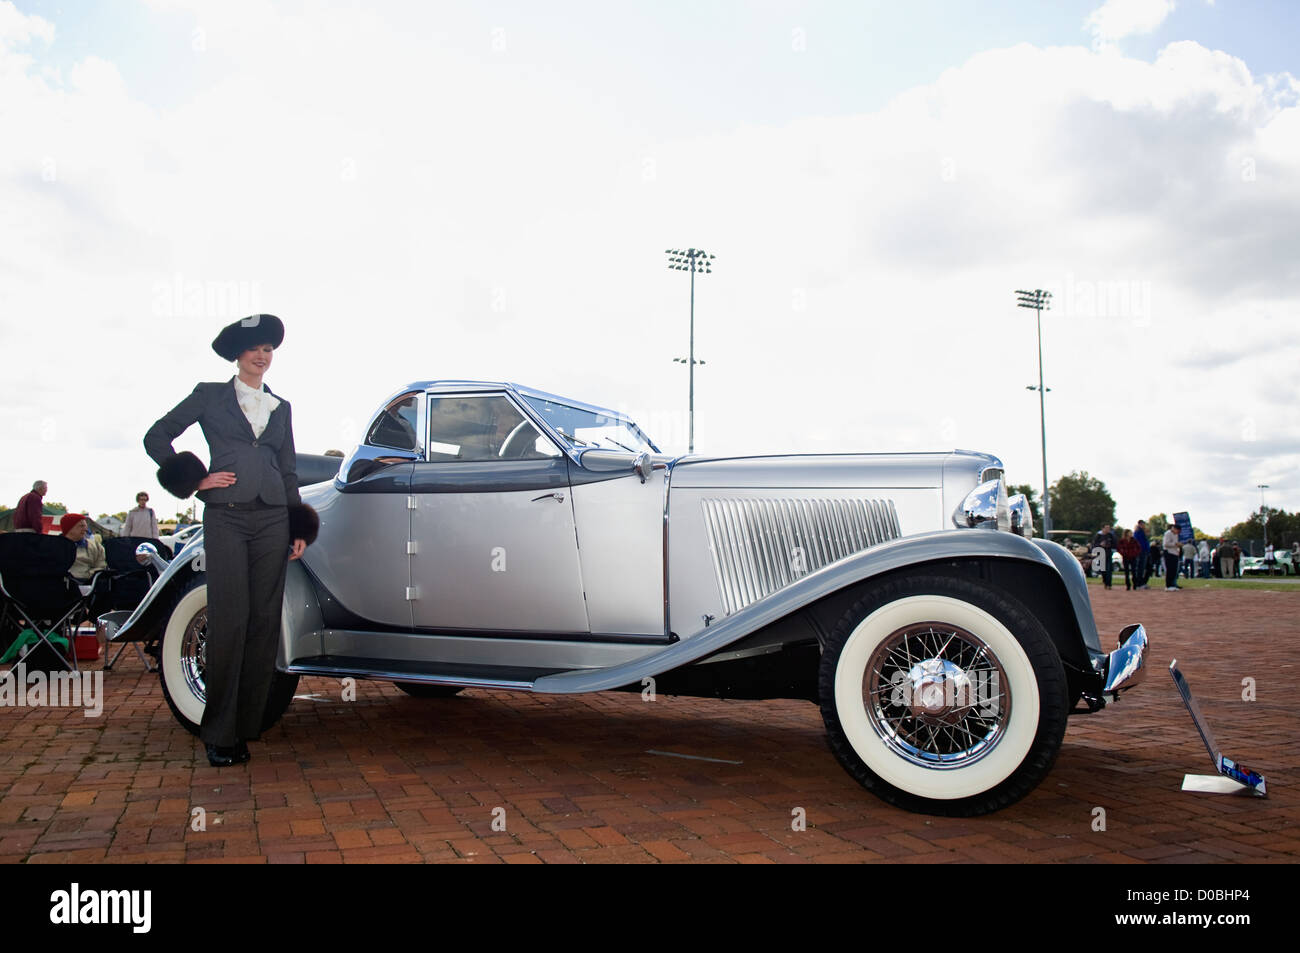 Model Posing Beside Classic Auburn Automobile at the 2012 Concours d'Elegance at Churchill Downs in Louisville, - Stock Image